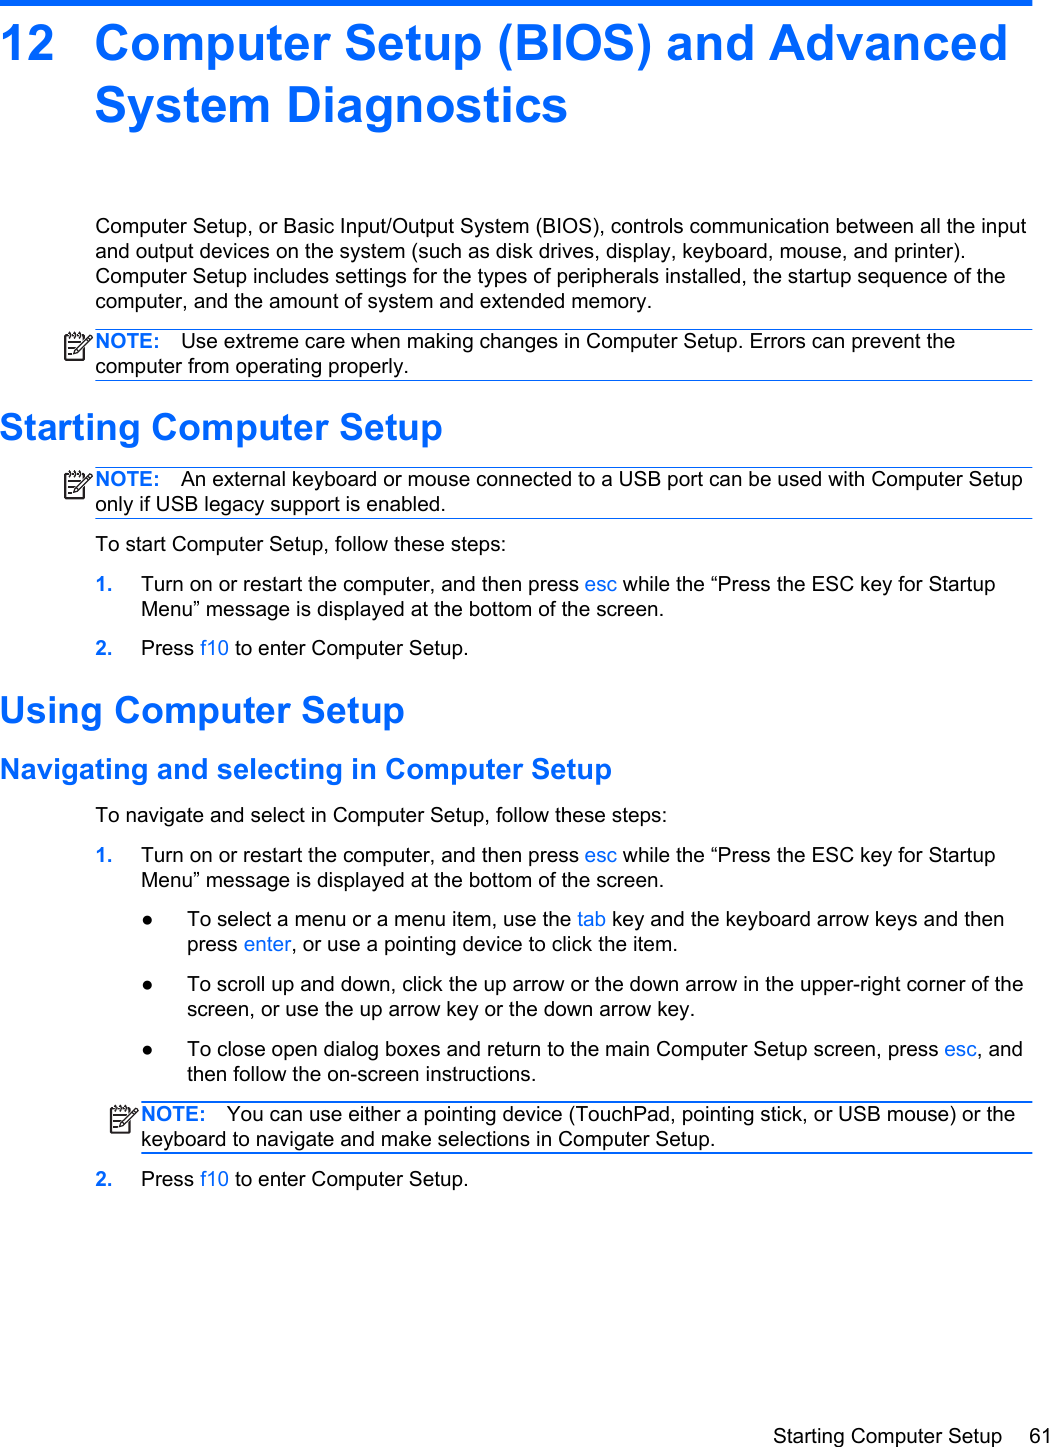 Hp Zbook 15 Mobile Workstation Users Manual